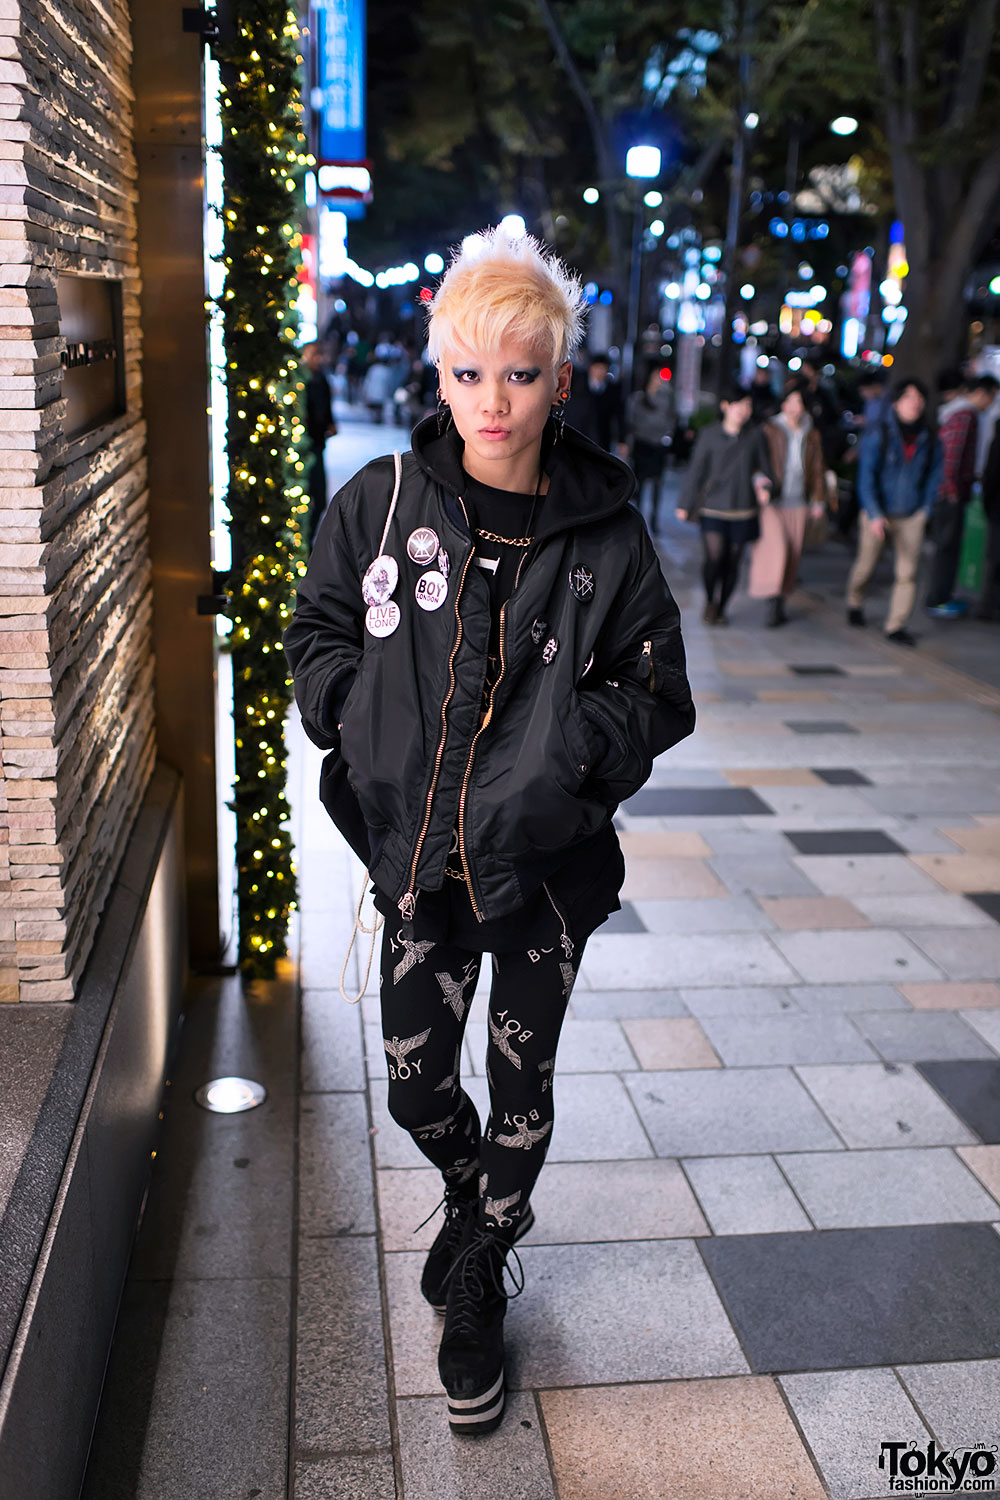 Chamii W Boy London Tongue Piercing Platforms In Harajuku